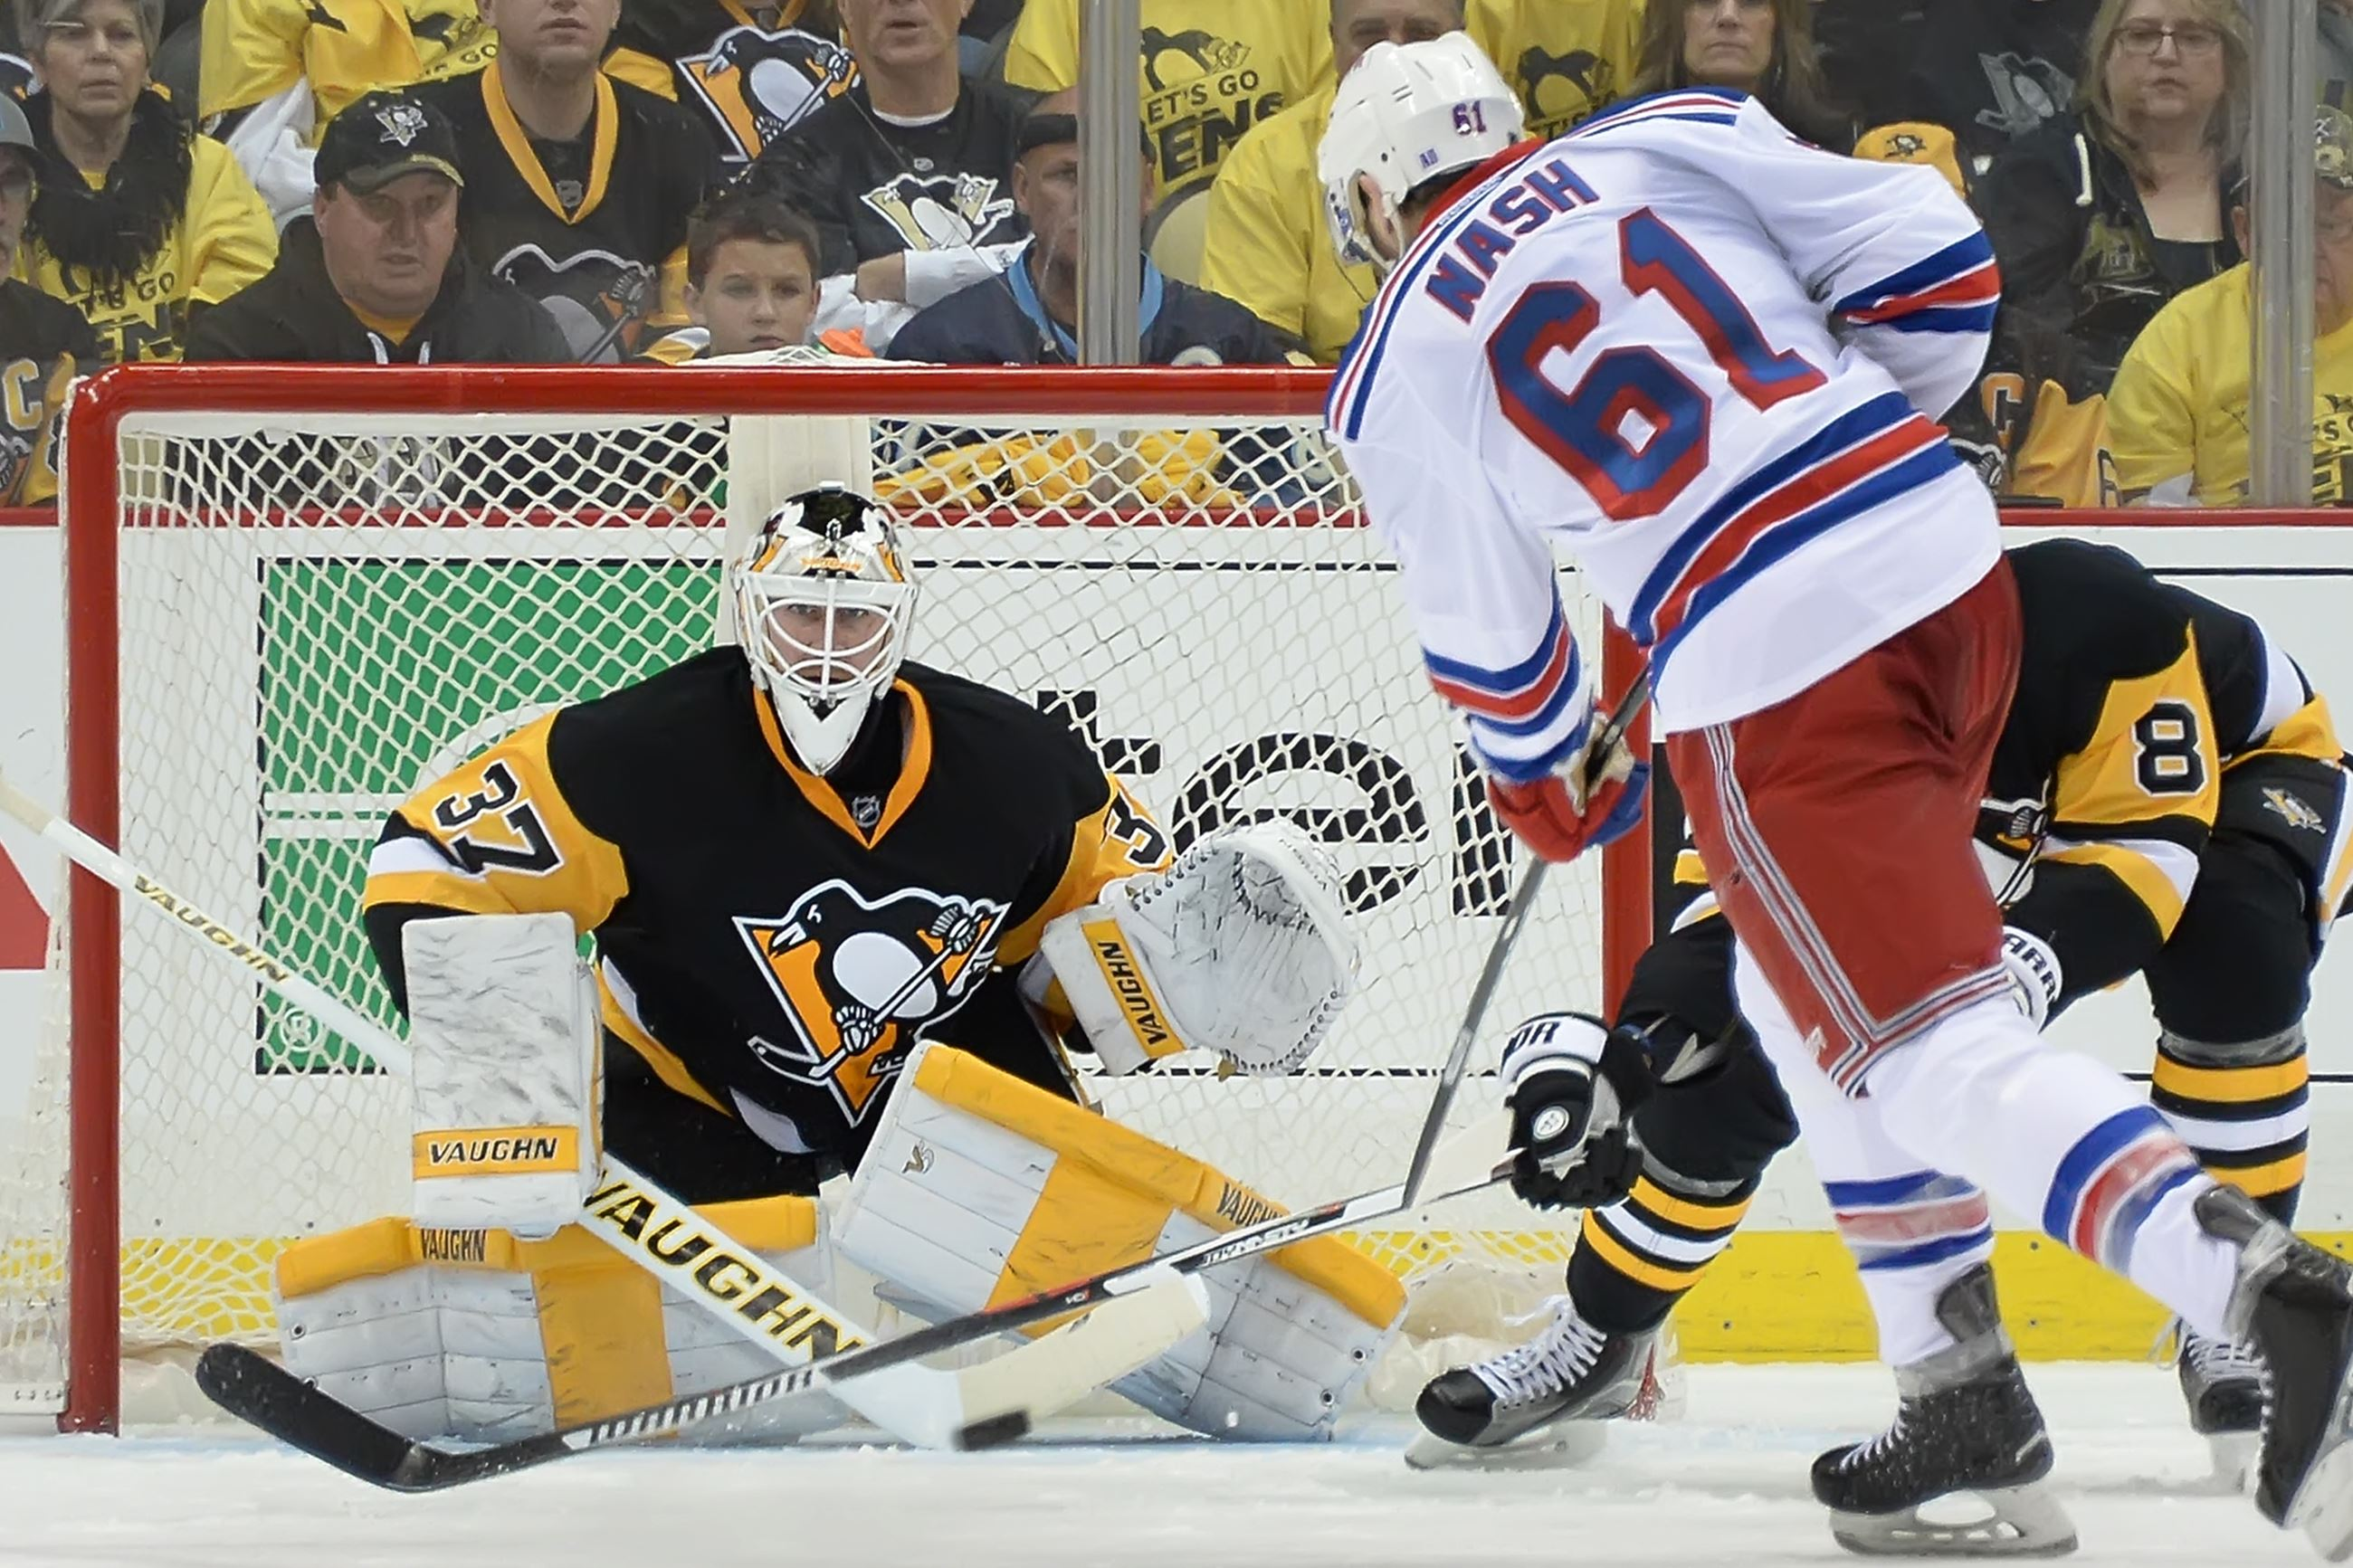 Malkin, Rust return to Penguins lineup, Fleury out for Game 2 against Rangers